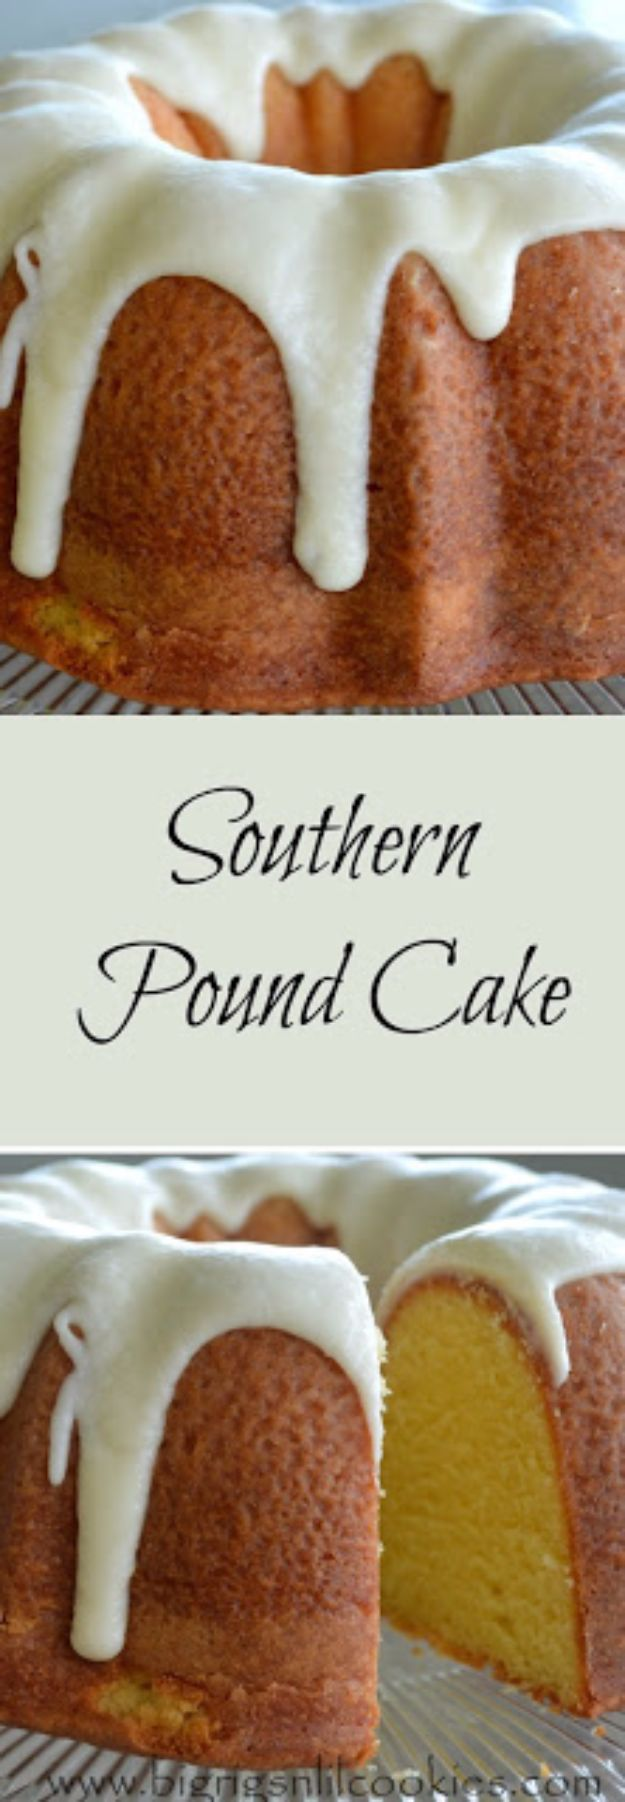 Best Country Cooking Recipes - Southern Pound Cake - Easy Recipes for Country Food Like Chicken Fried Steak, Fried Green Tomatoes, Southern Gravy, Breads and Biscuits, Casseroles and More - Breakfast, Lunch and Dinner Recipe Ideas for Families and Feeding A Crowd - Step by Step Instructions for Making Homestyle Dips, Snacks, Desserts http://diyjoy.com/country-cooking-recipes